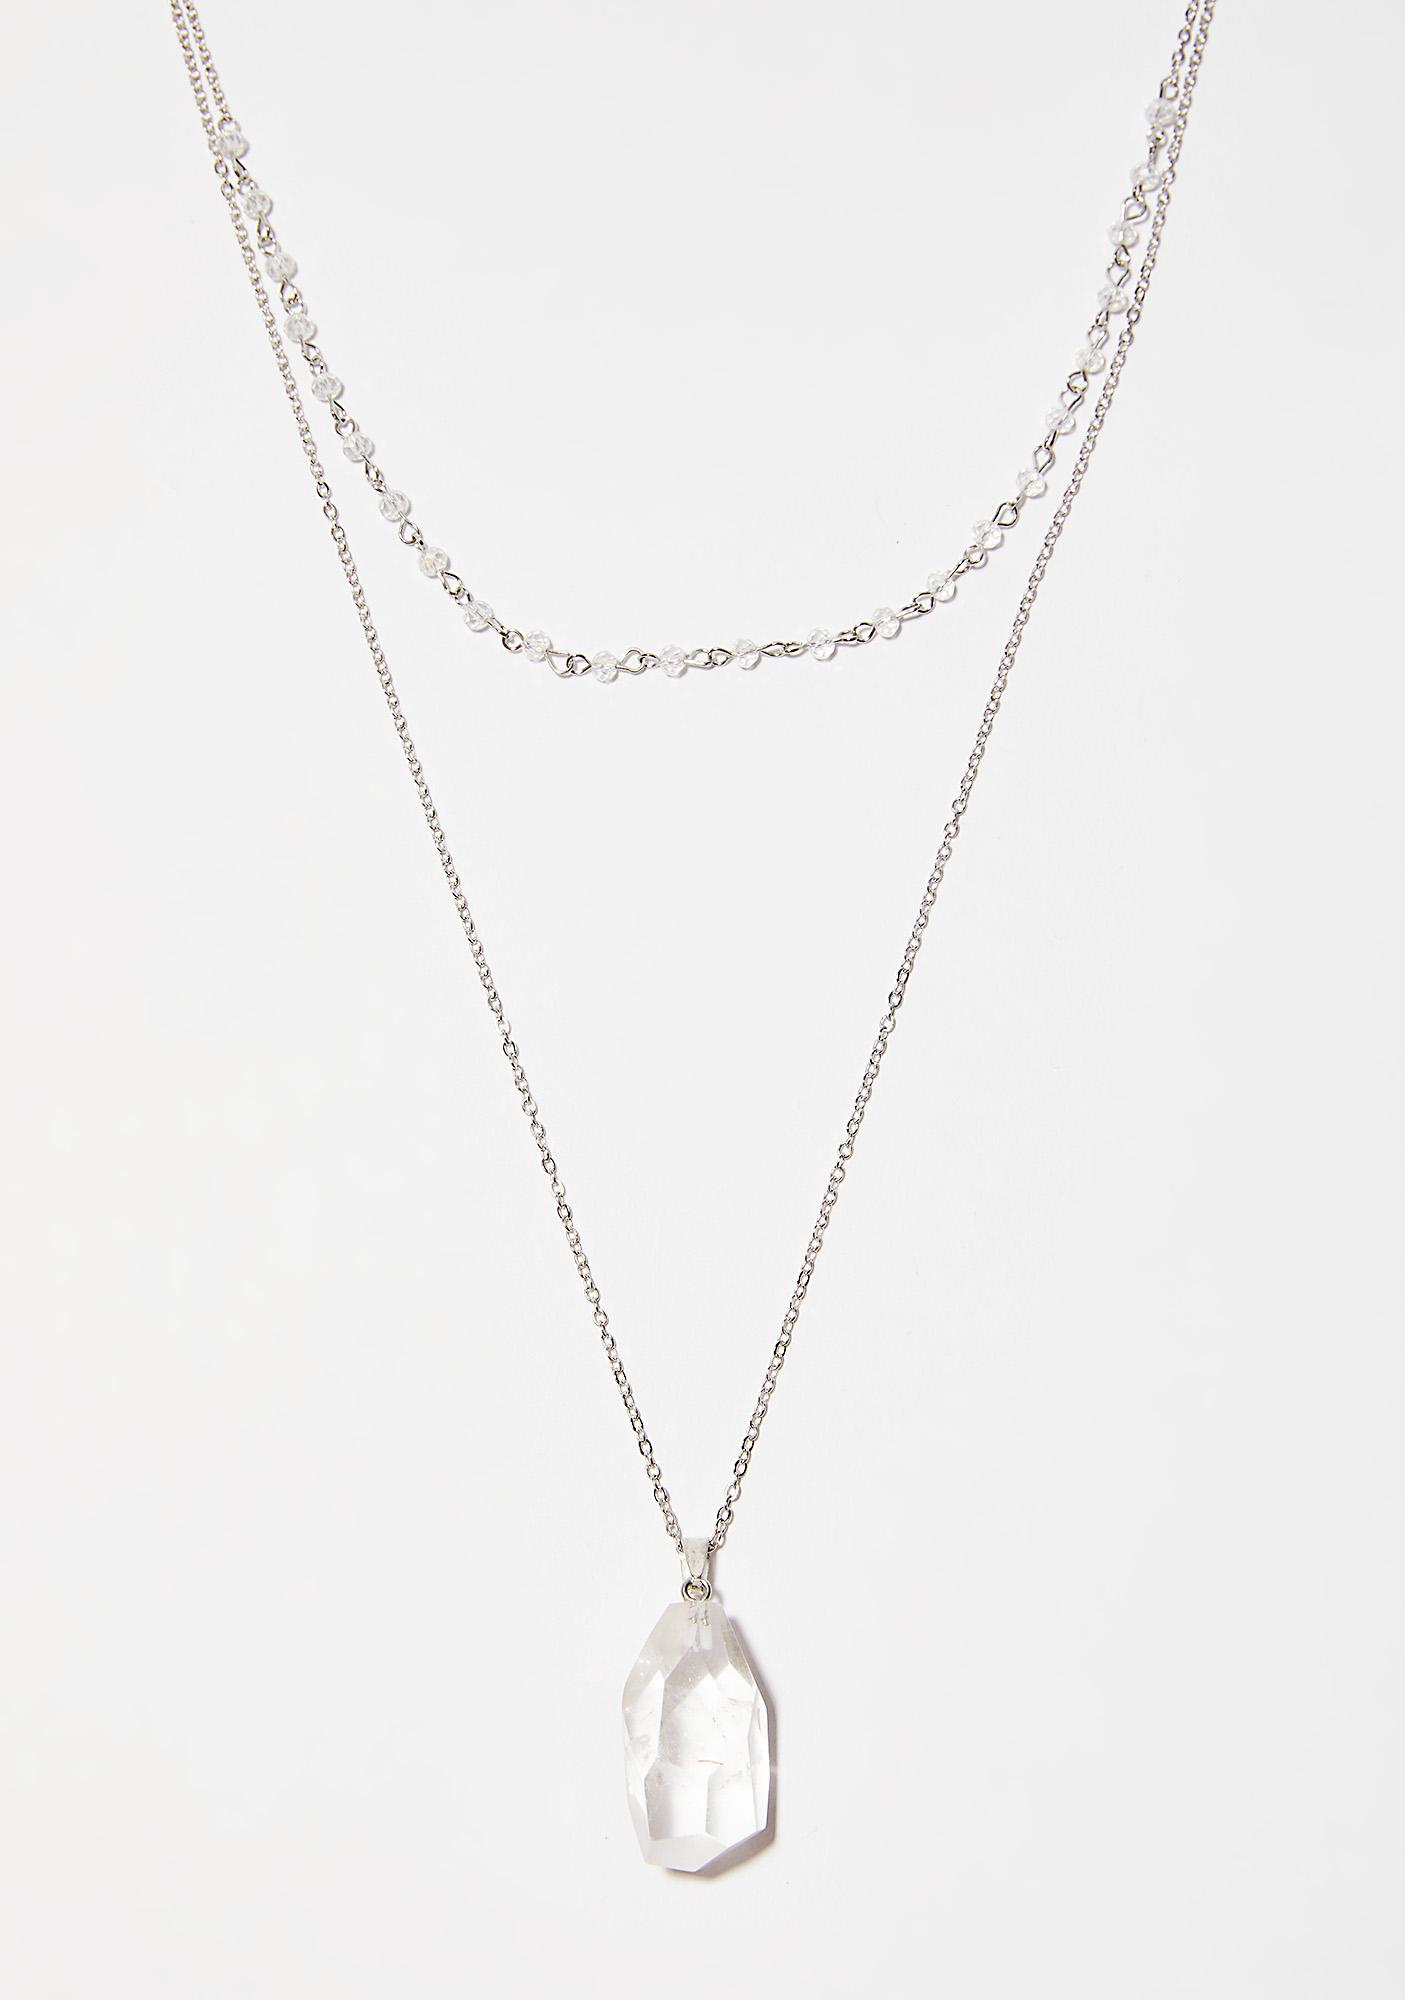 energy necklace michielan anna contemplative crystal product online